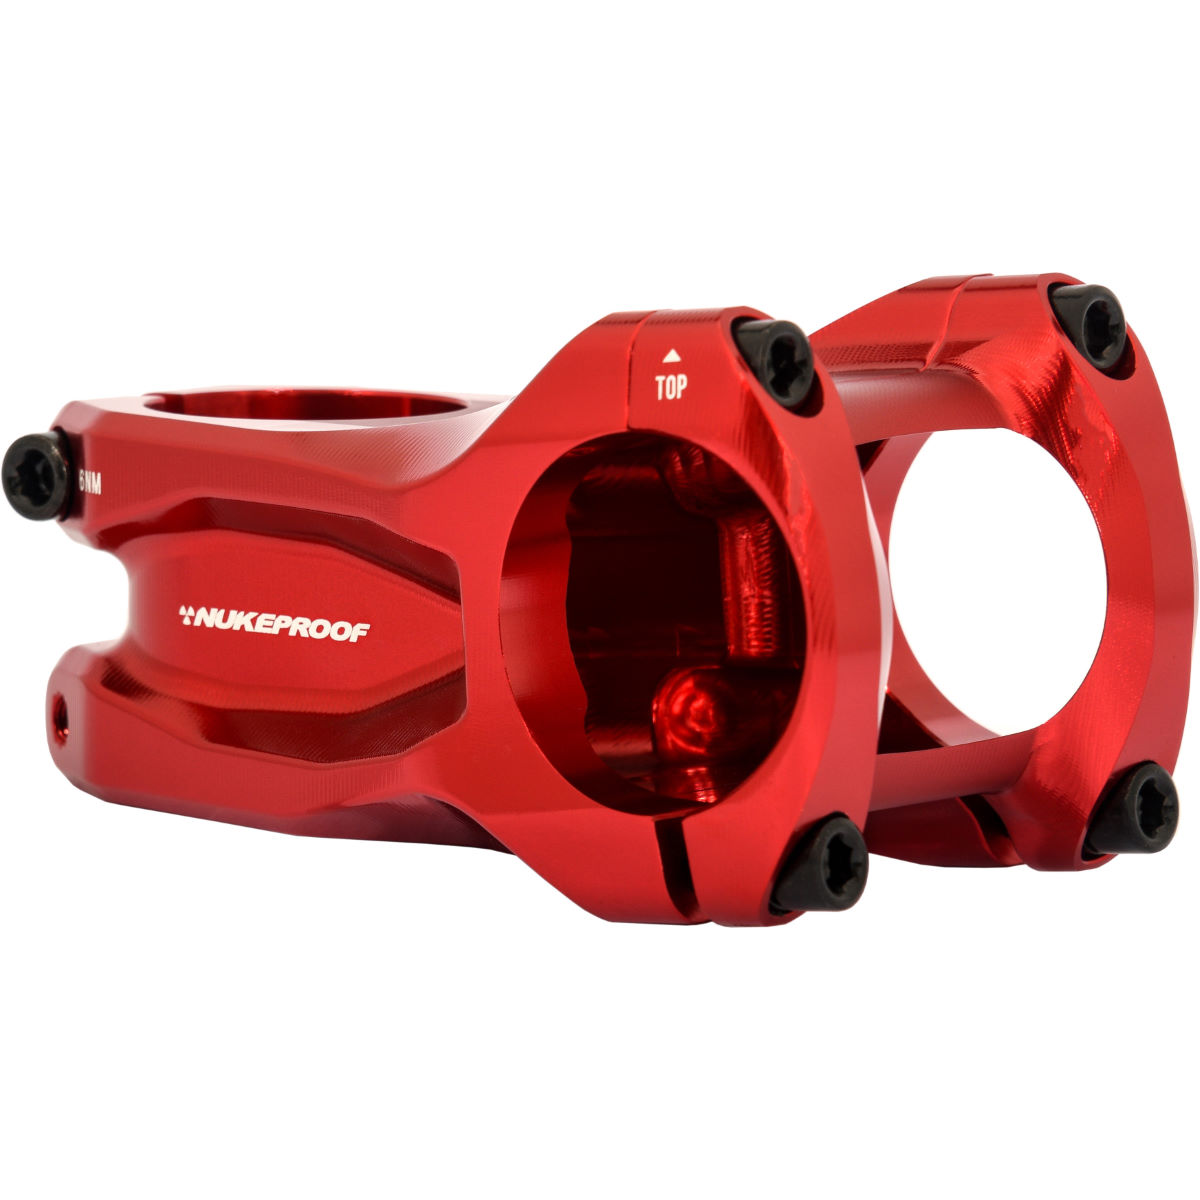 Potence Nukeproof Horizon - 31.8mm x 60mm Rouge Potences